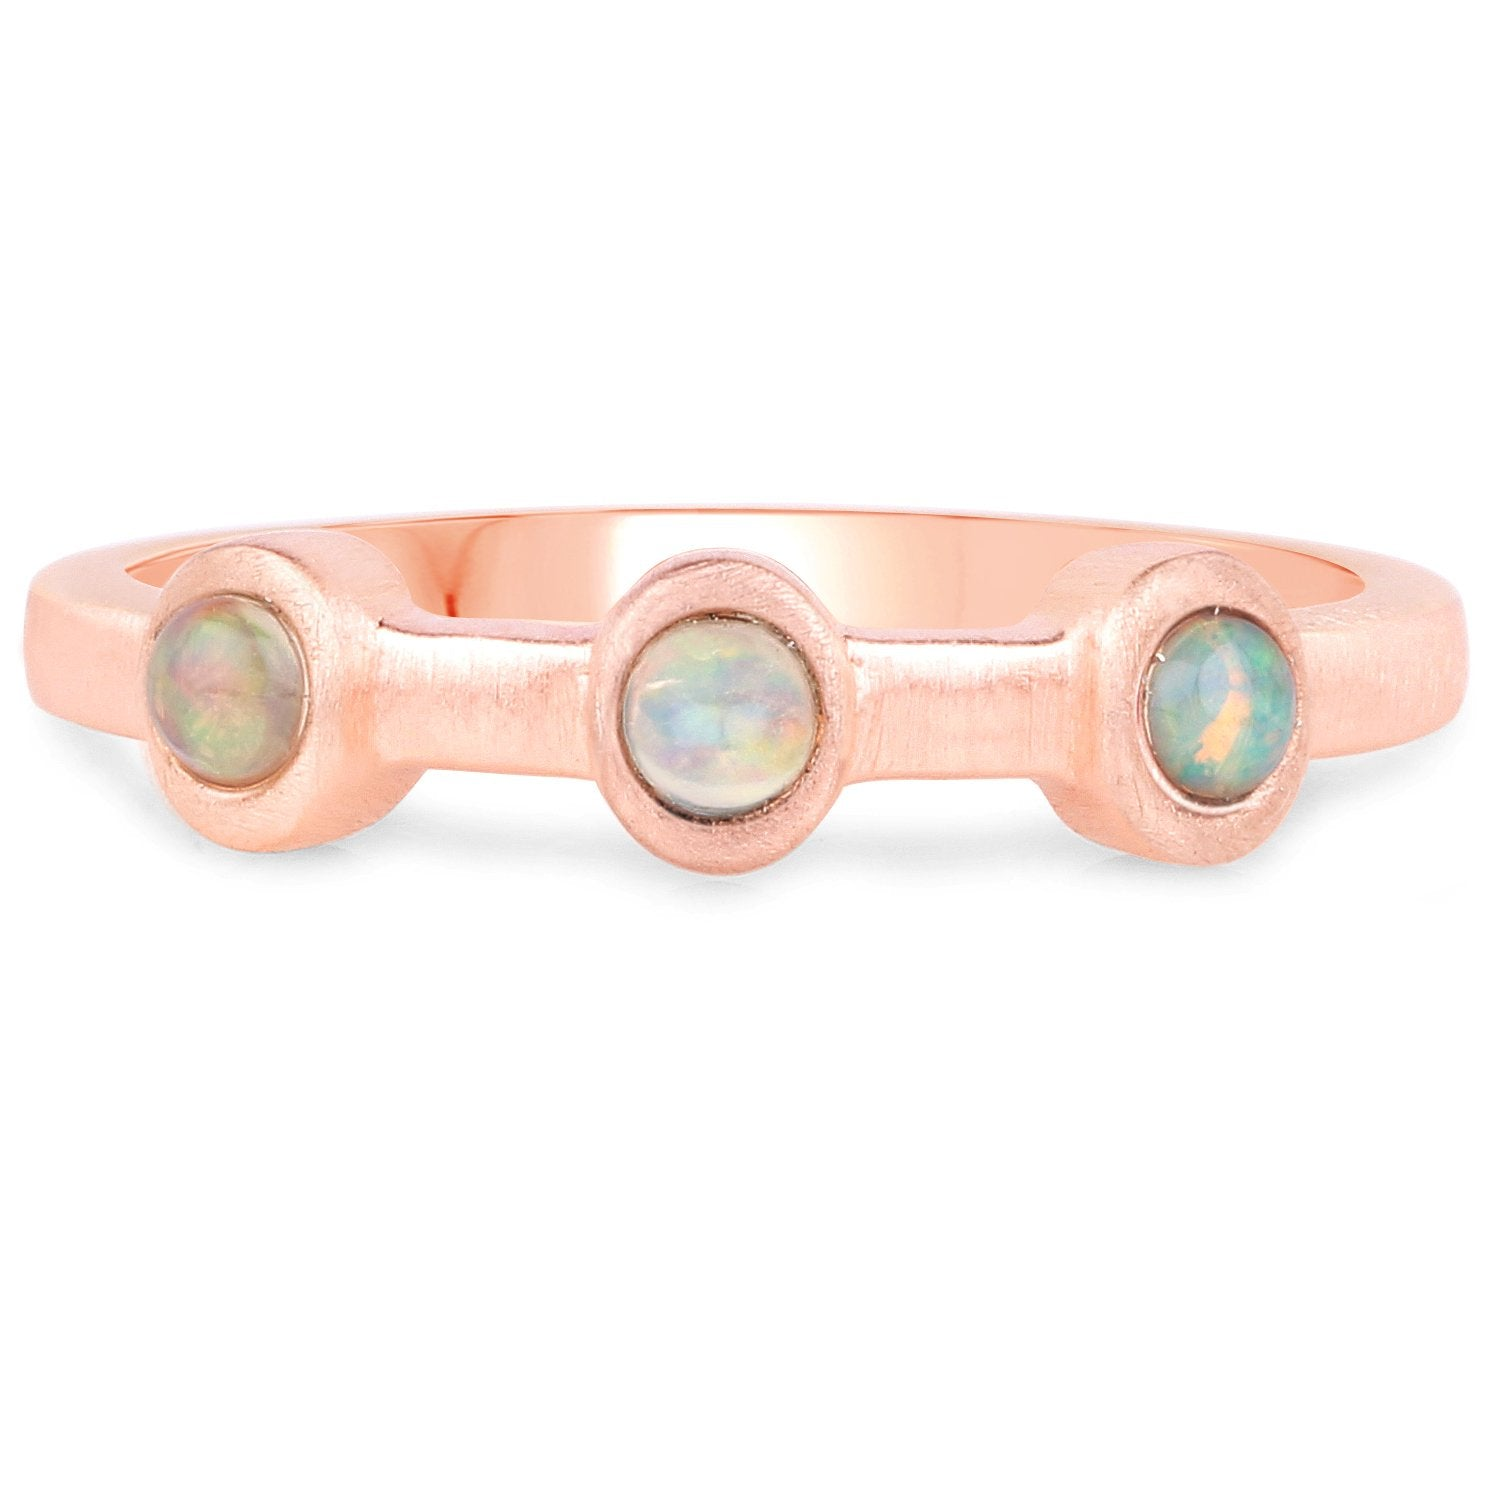 LoveHuang 0.11 Carats Genuine Ethiopian Opal Three Stone Ring Solid .925 Sterling Silver With 18KT Rose Gold Plating, Matte Finish